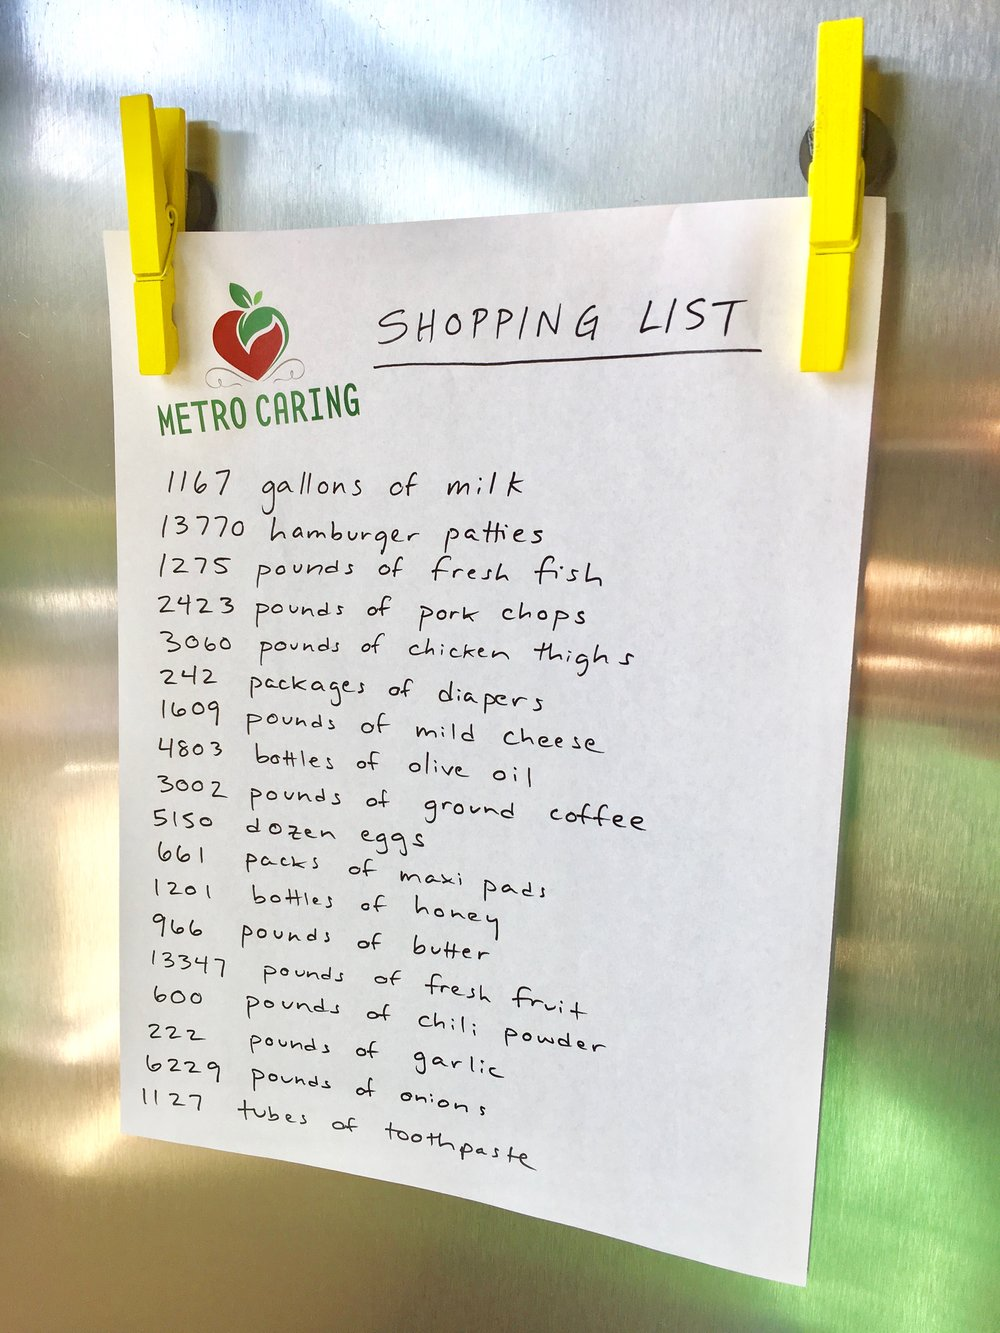 Shopping List Image.jpg